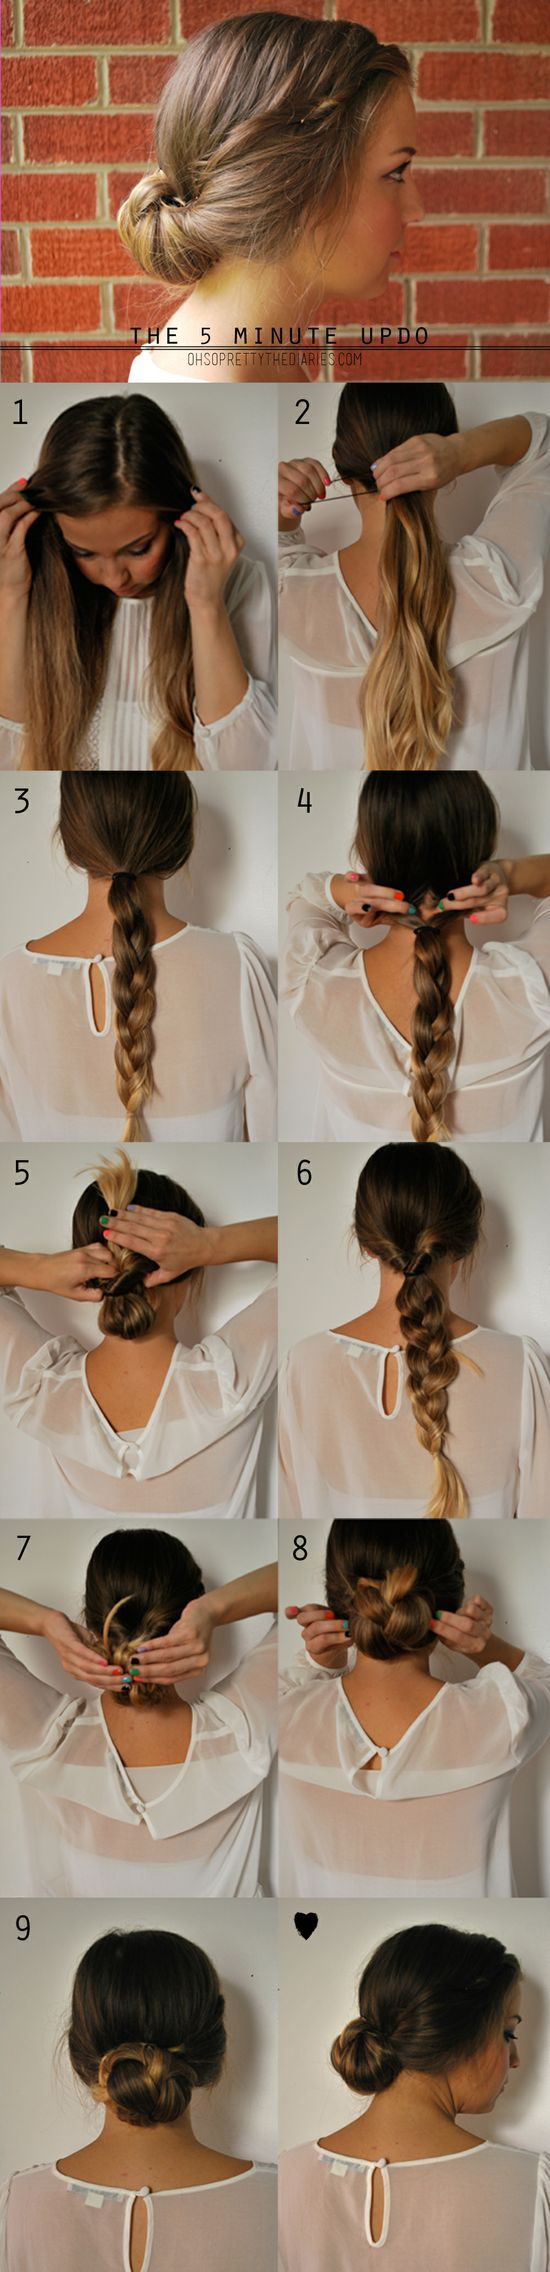 Stupendous 1000 Ideas About Easy Braided Updo On Pinterest Updo Hairstyle Hairstyle Inspiration Daily Dogsangcom